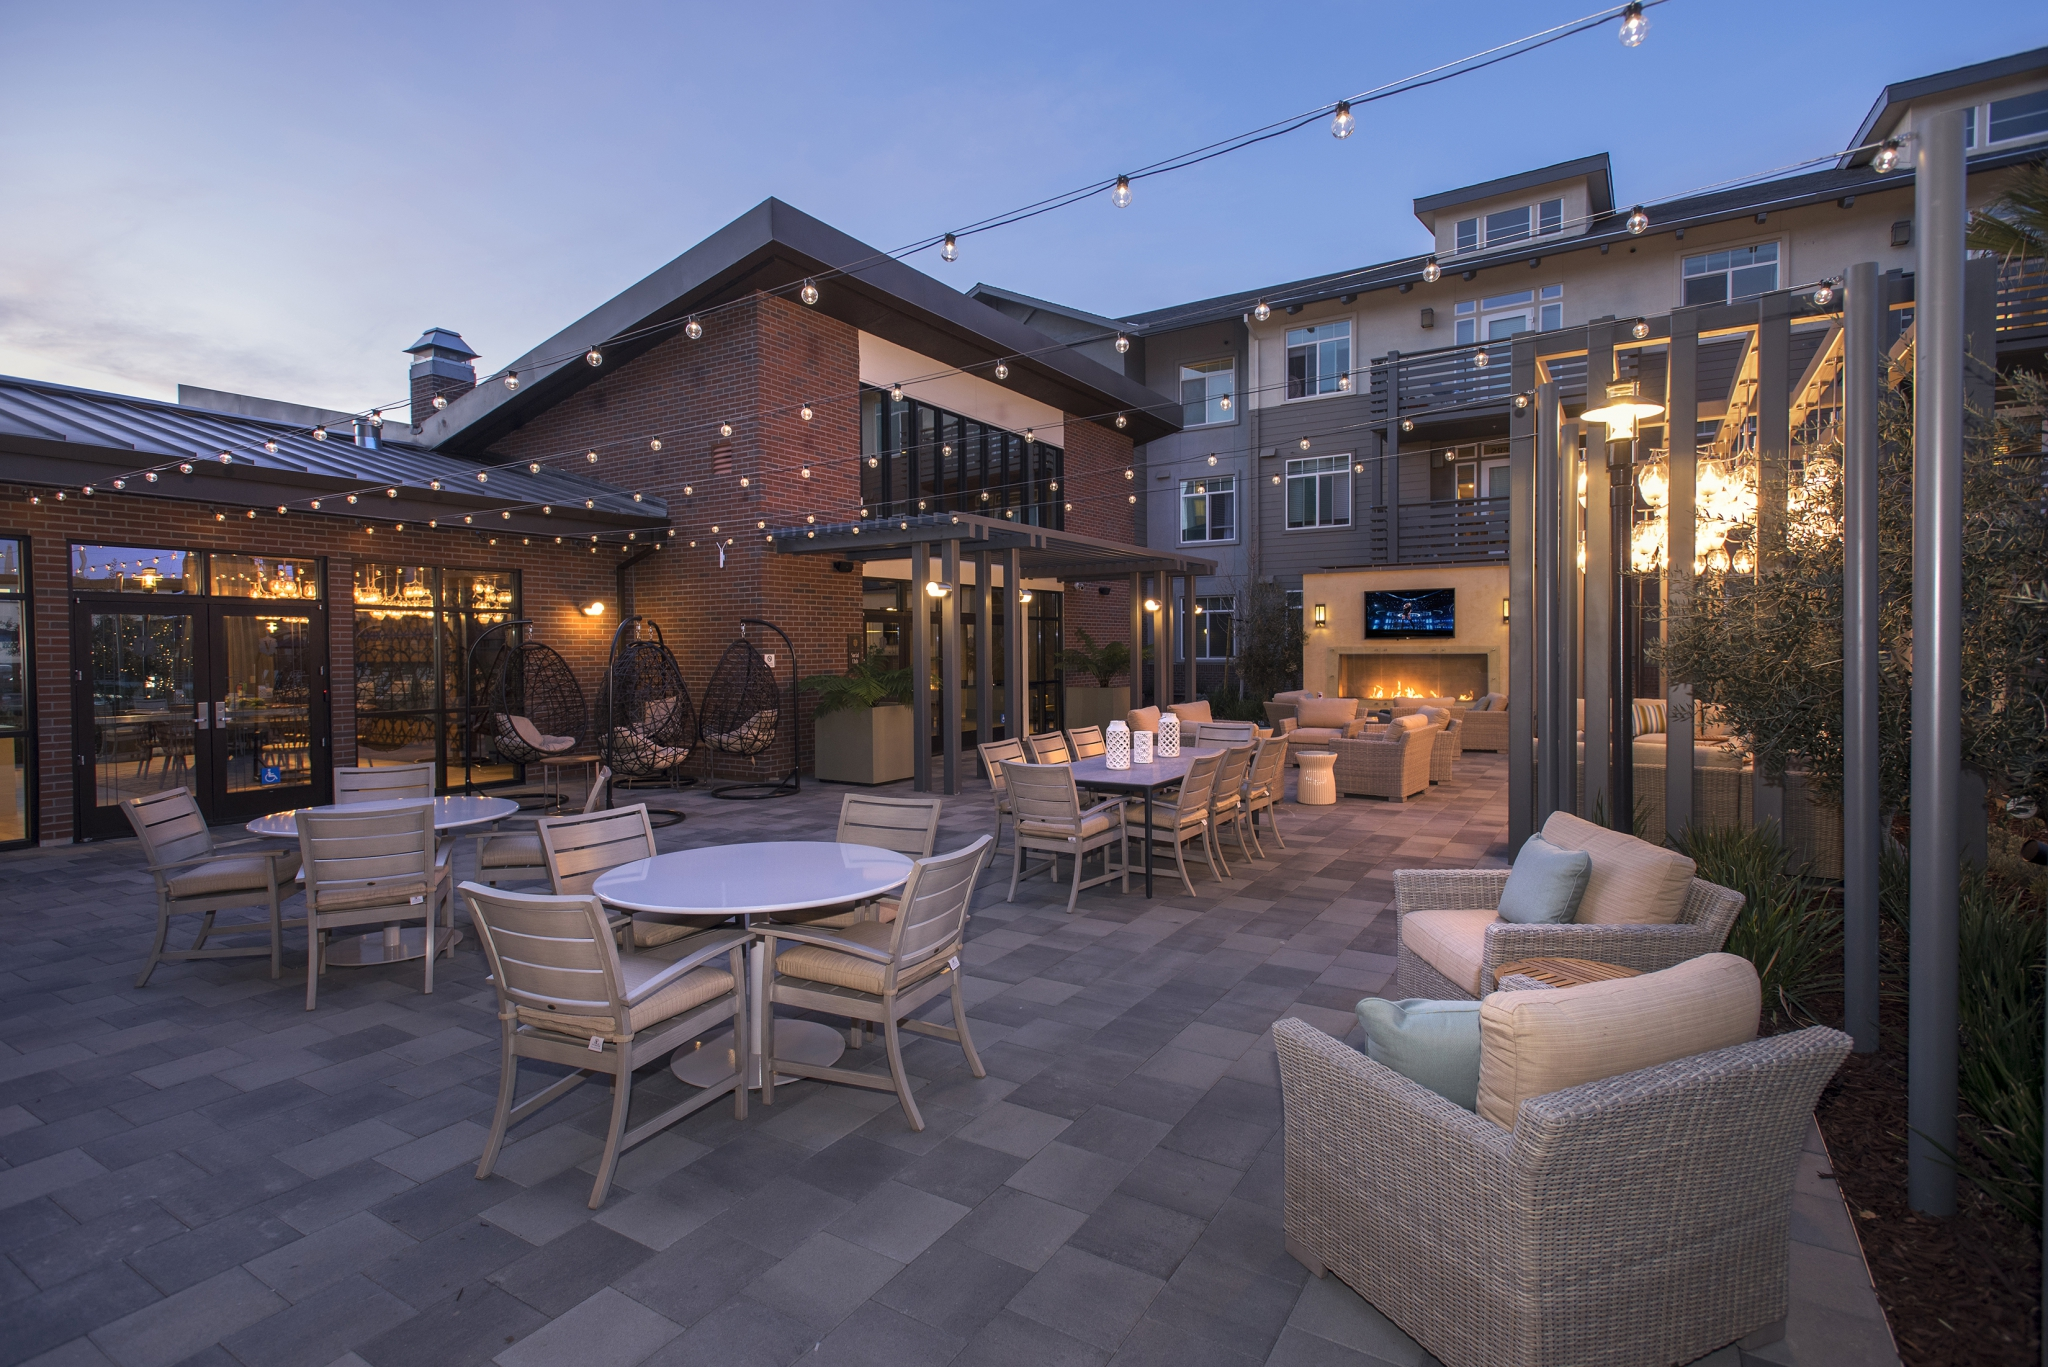 Exterior common area with dining tables, seating, fireplace and large-screen television surrounded by apartment buildings